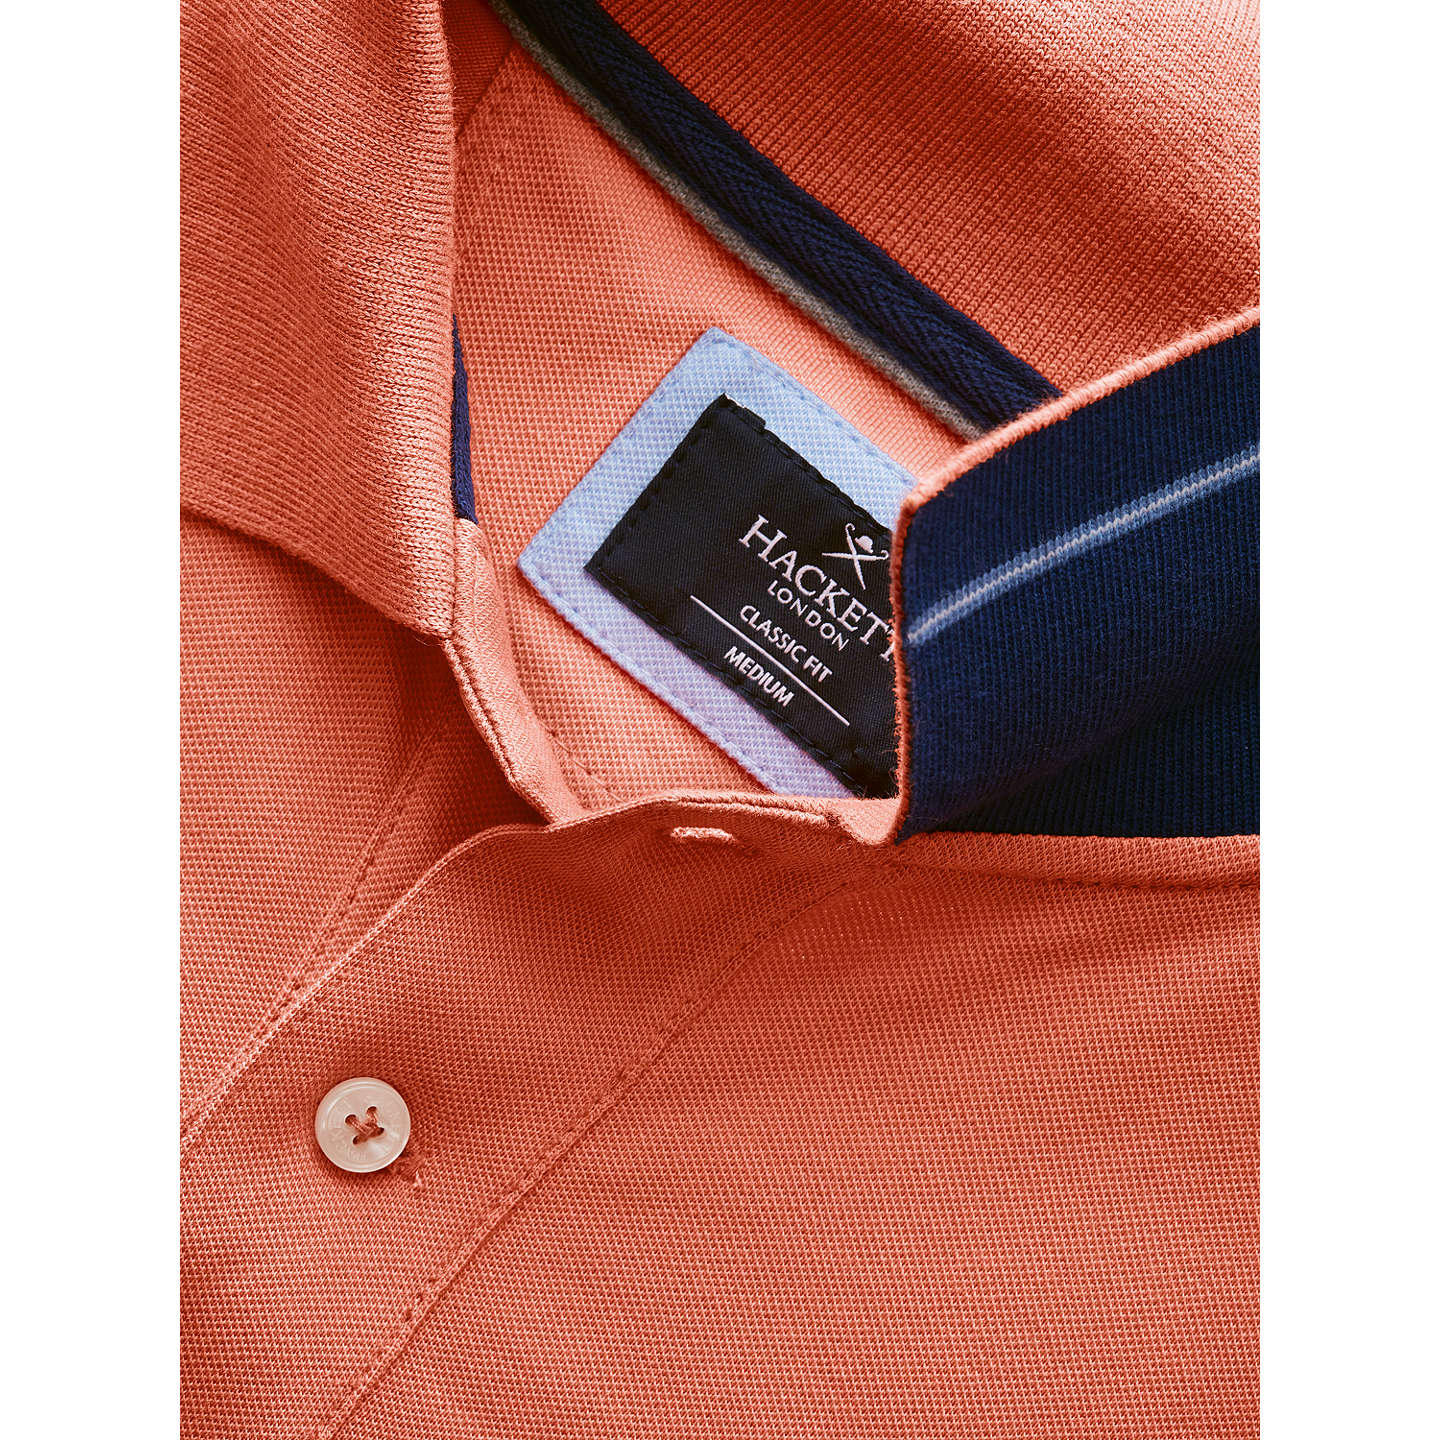 BuyHackett London New Classic Short Sleeve Polo Shirt, Coral, S Online at johnlewis.com